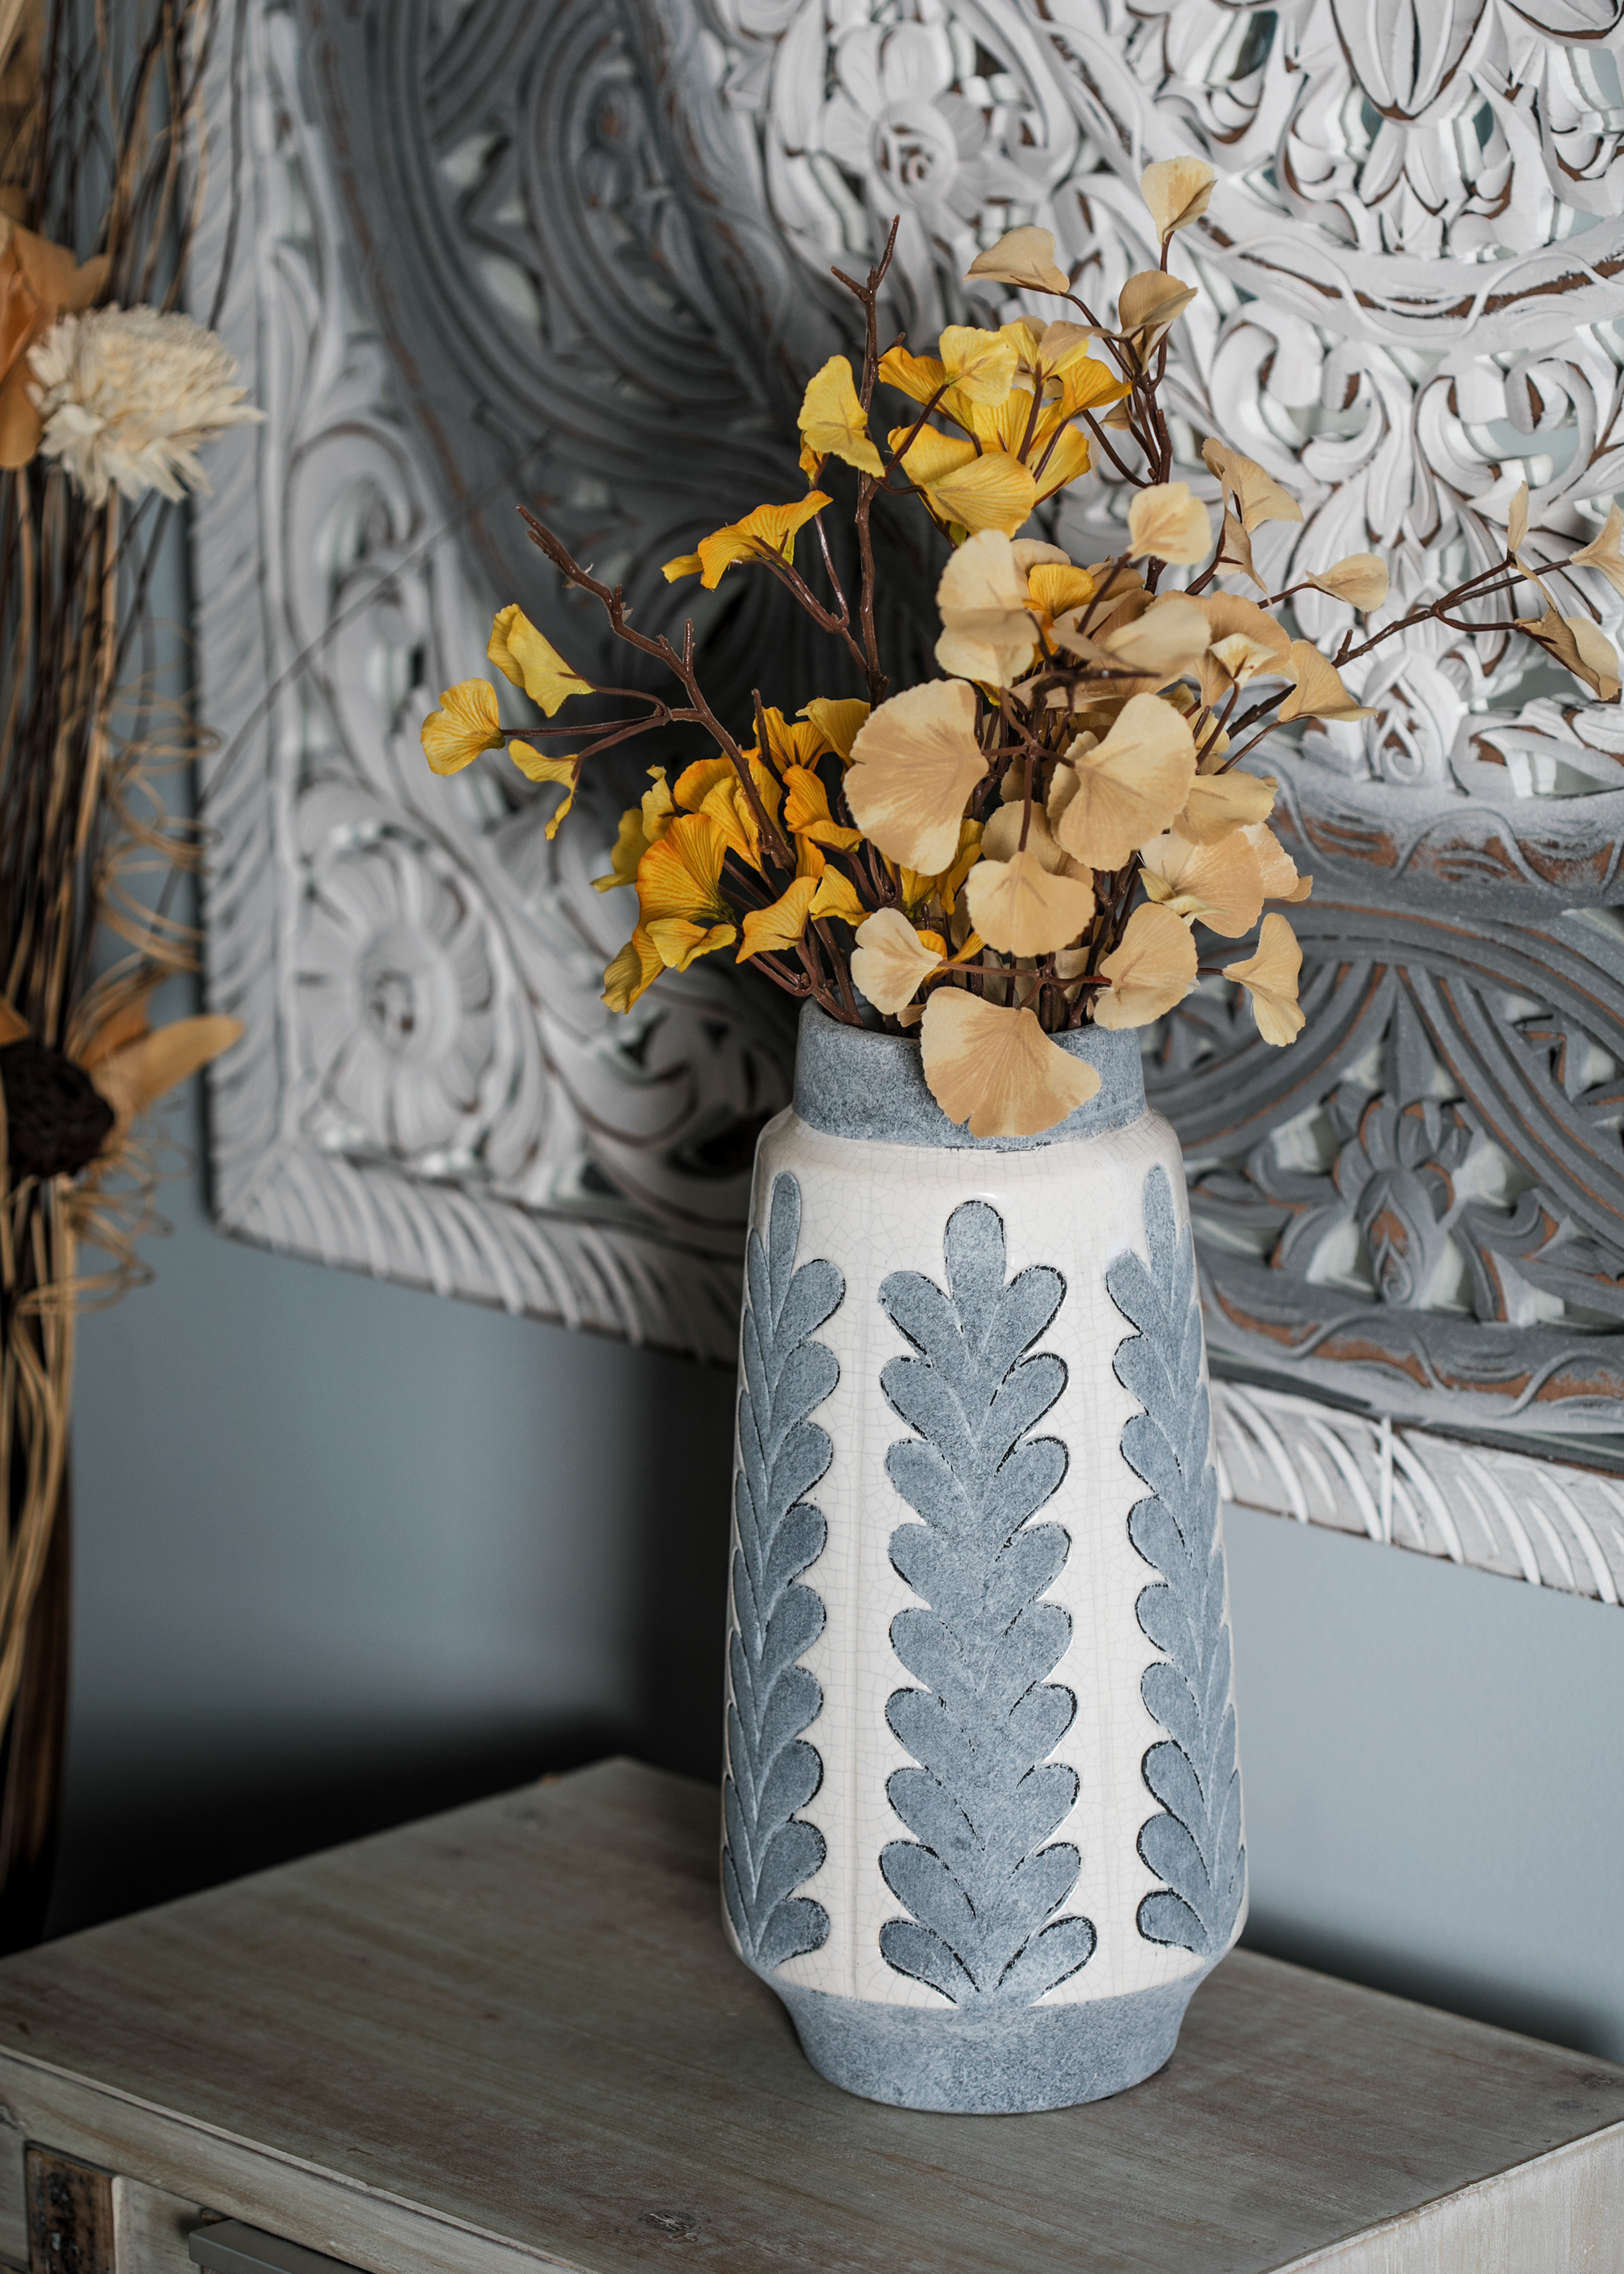 The blue and white vase with a leaf design